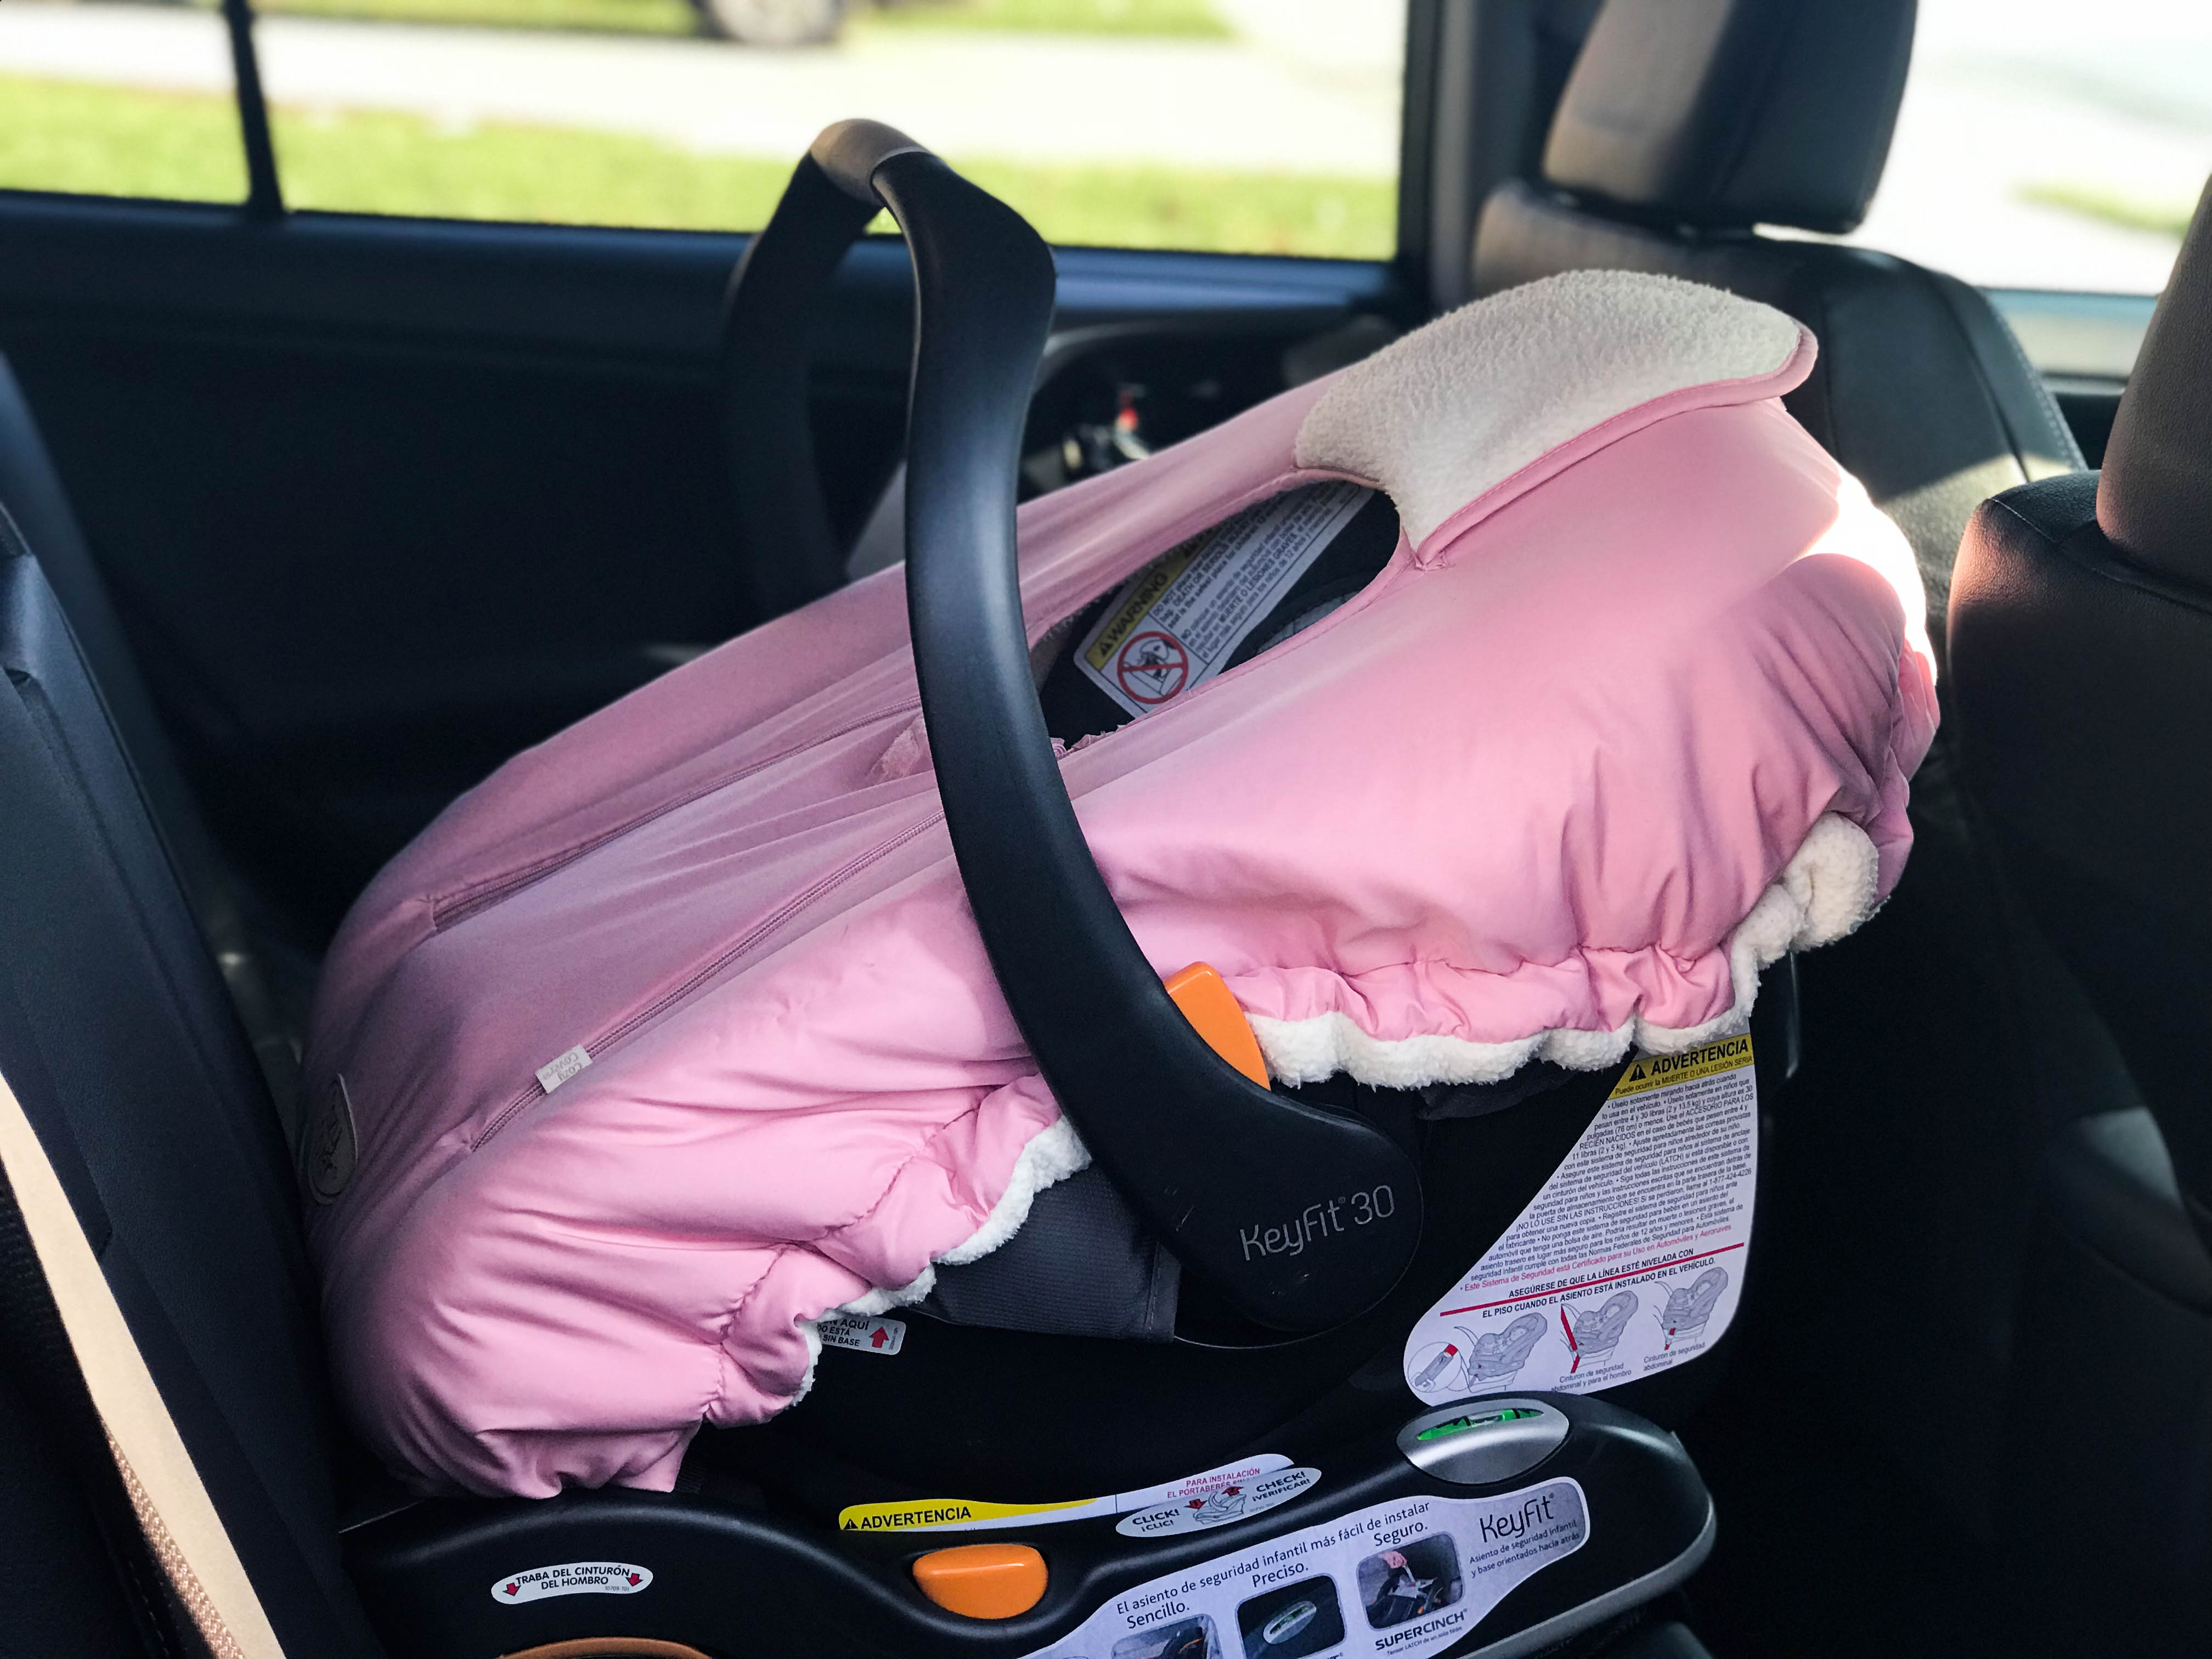 A New Study At The Ohio State University Wexner Medical Center Found That Rear Facing Car Seats Are Safe For Children In Impact Crashes